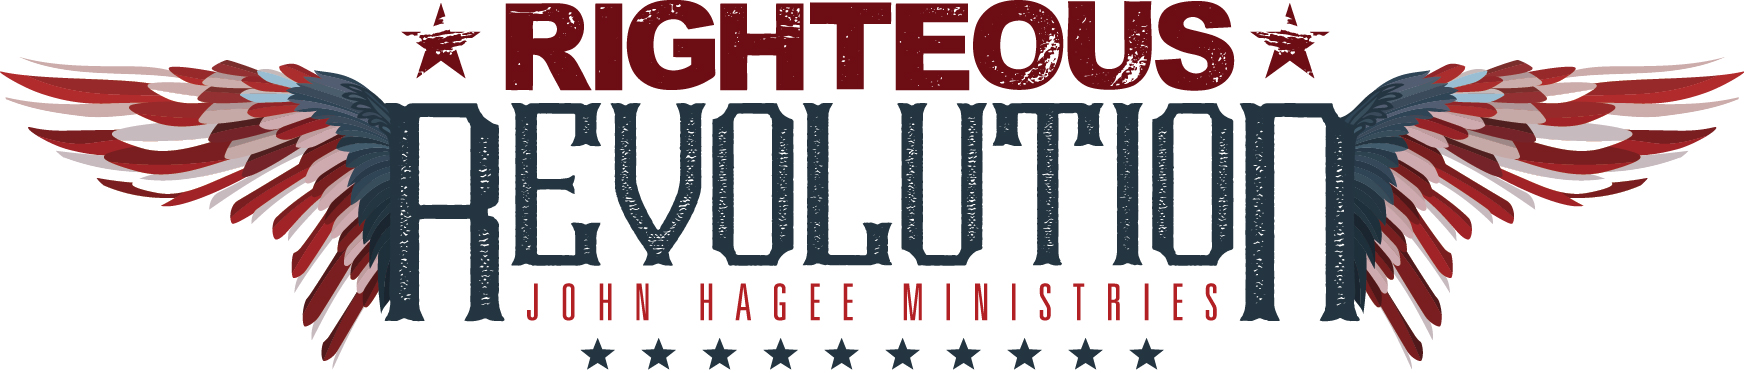 JOHN HAGEE MINISTRIES BRINGS ANNUAL 'RIGHTEOUS REVOLUTION' TO BRANSON NEXT MONTH